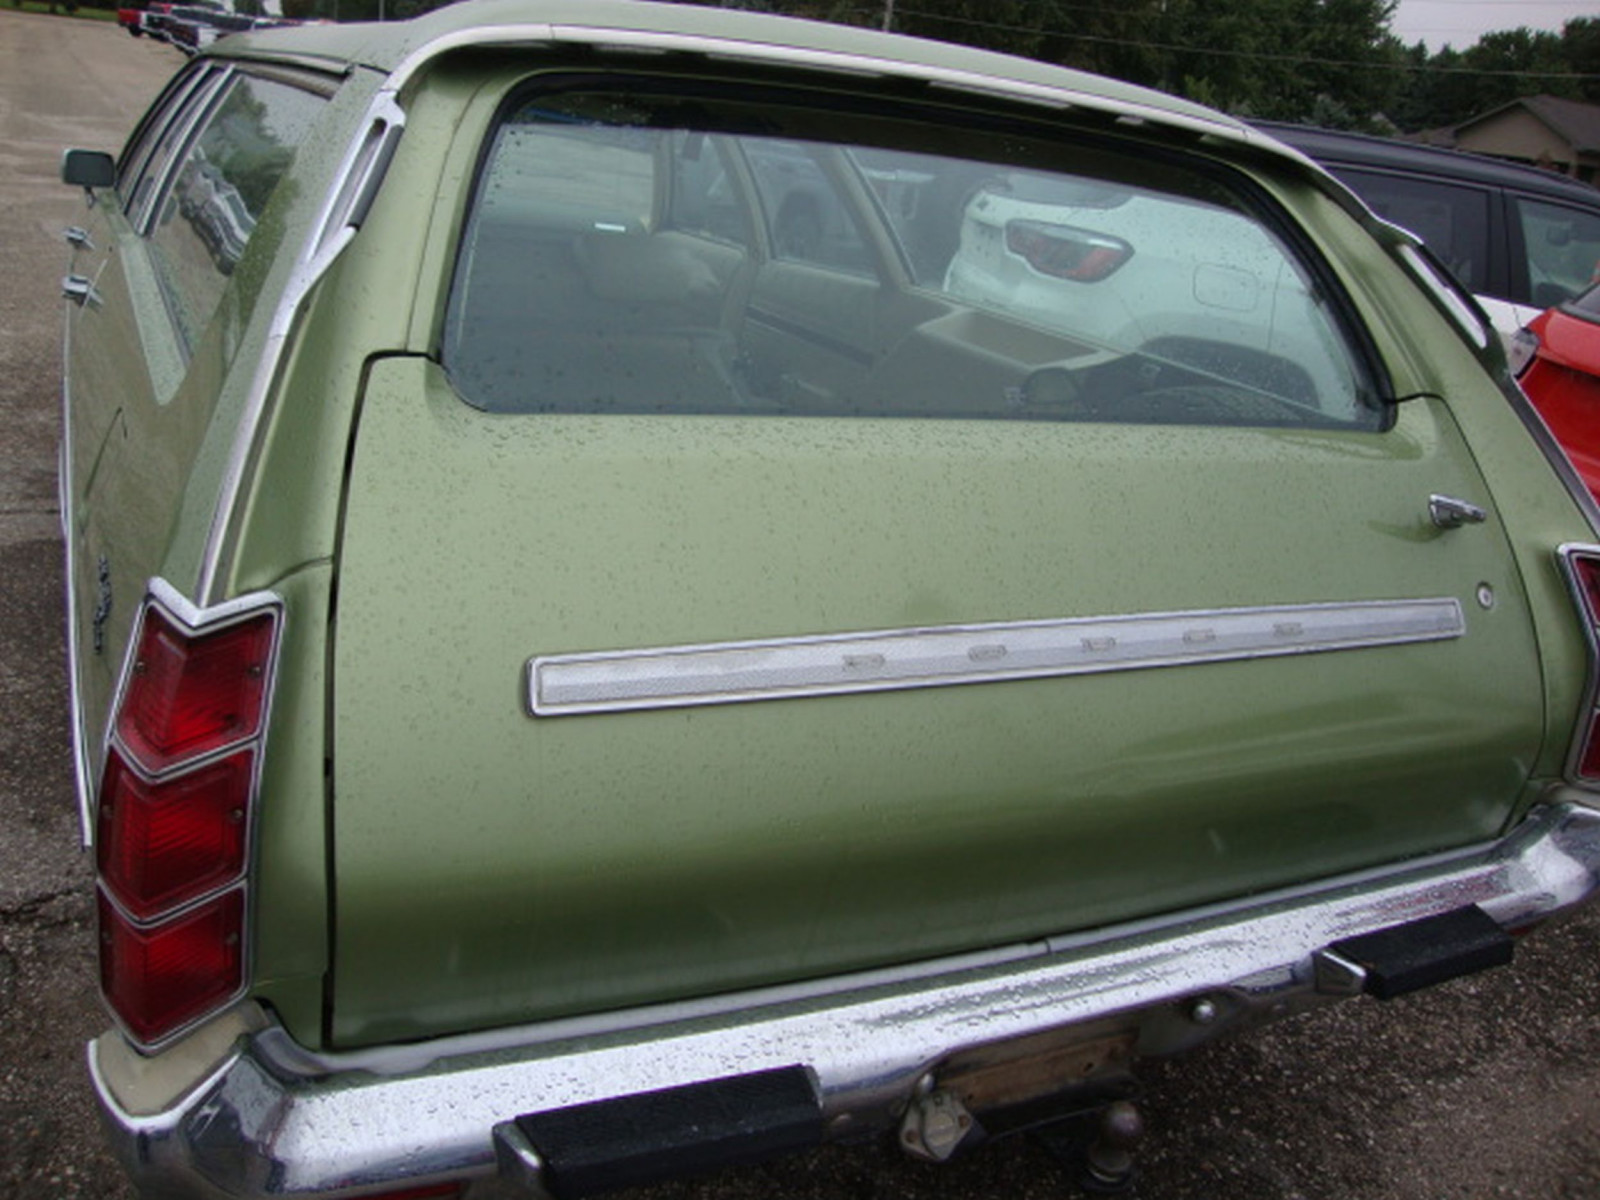 1973 Dodge Polara Custom Wagon - Image 4